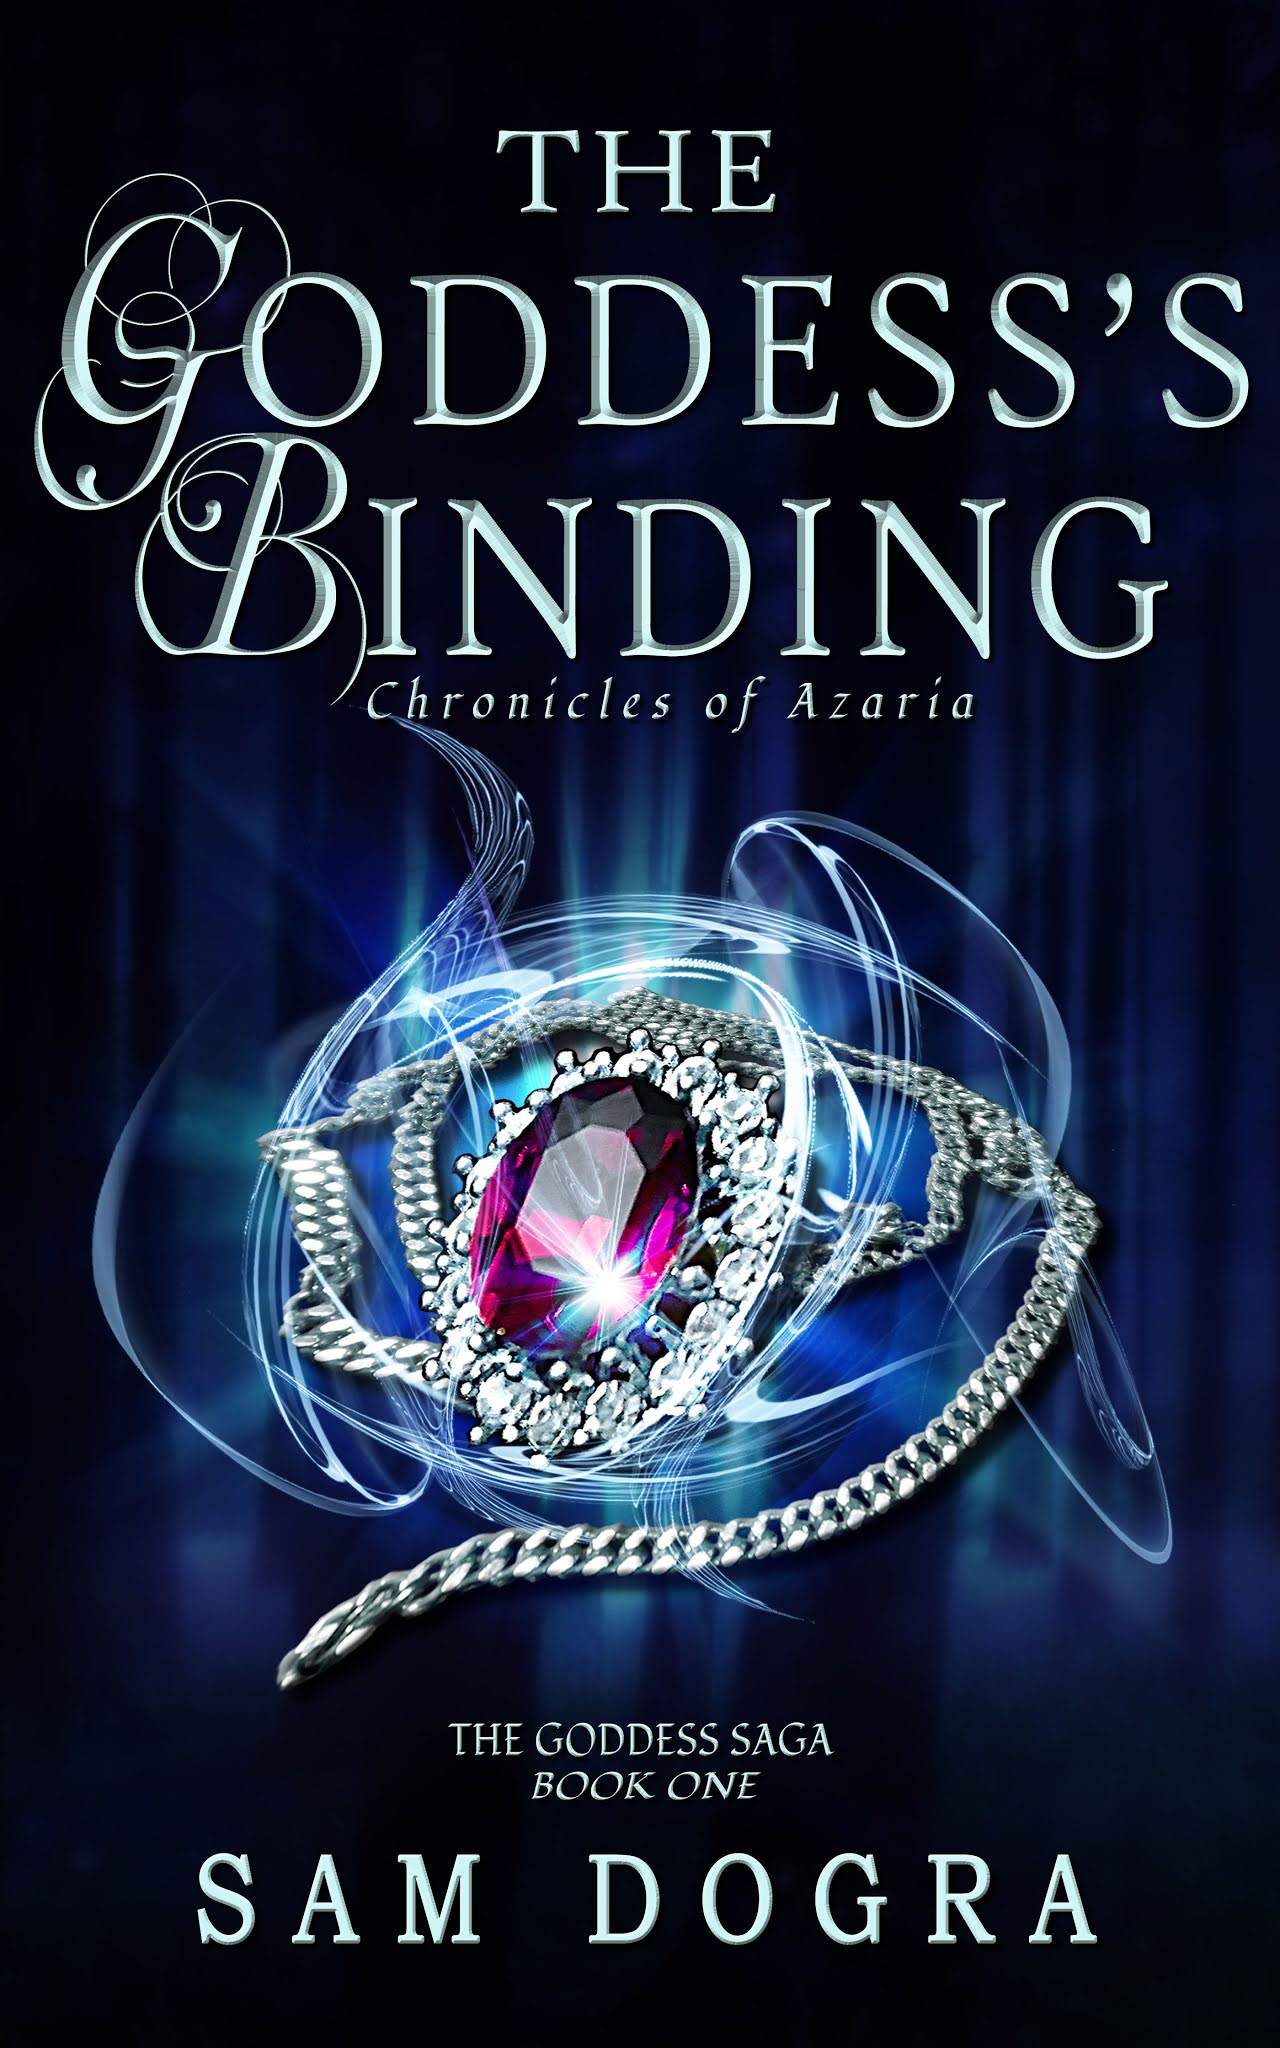 The Goddess's Binding